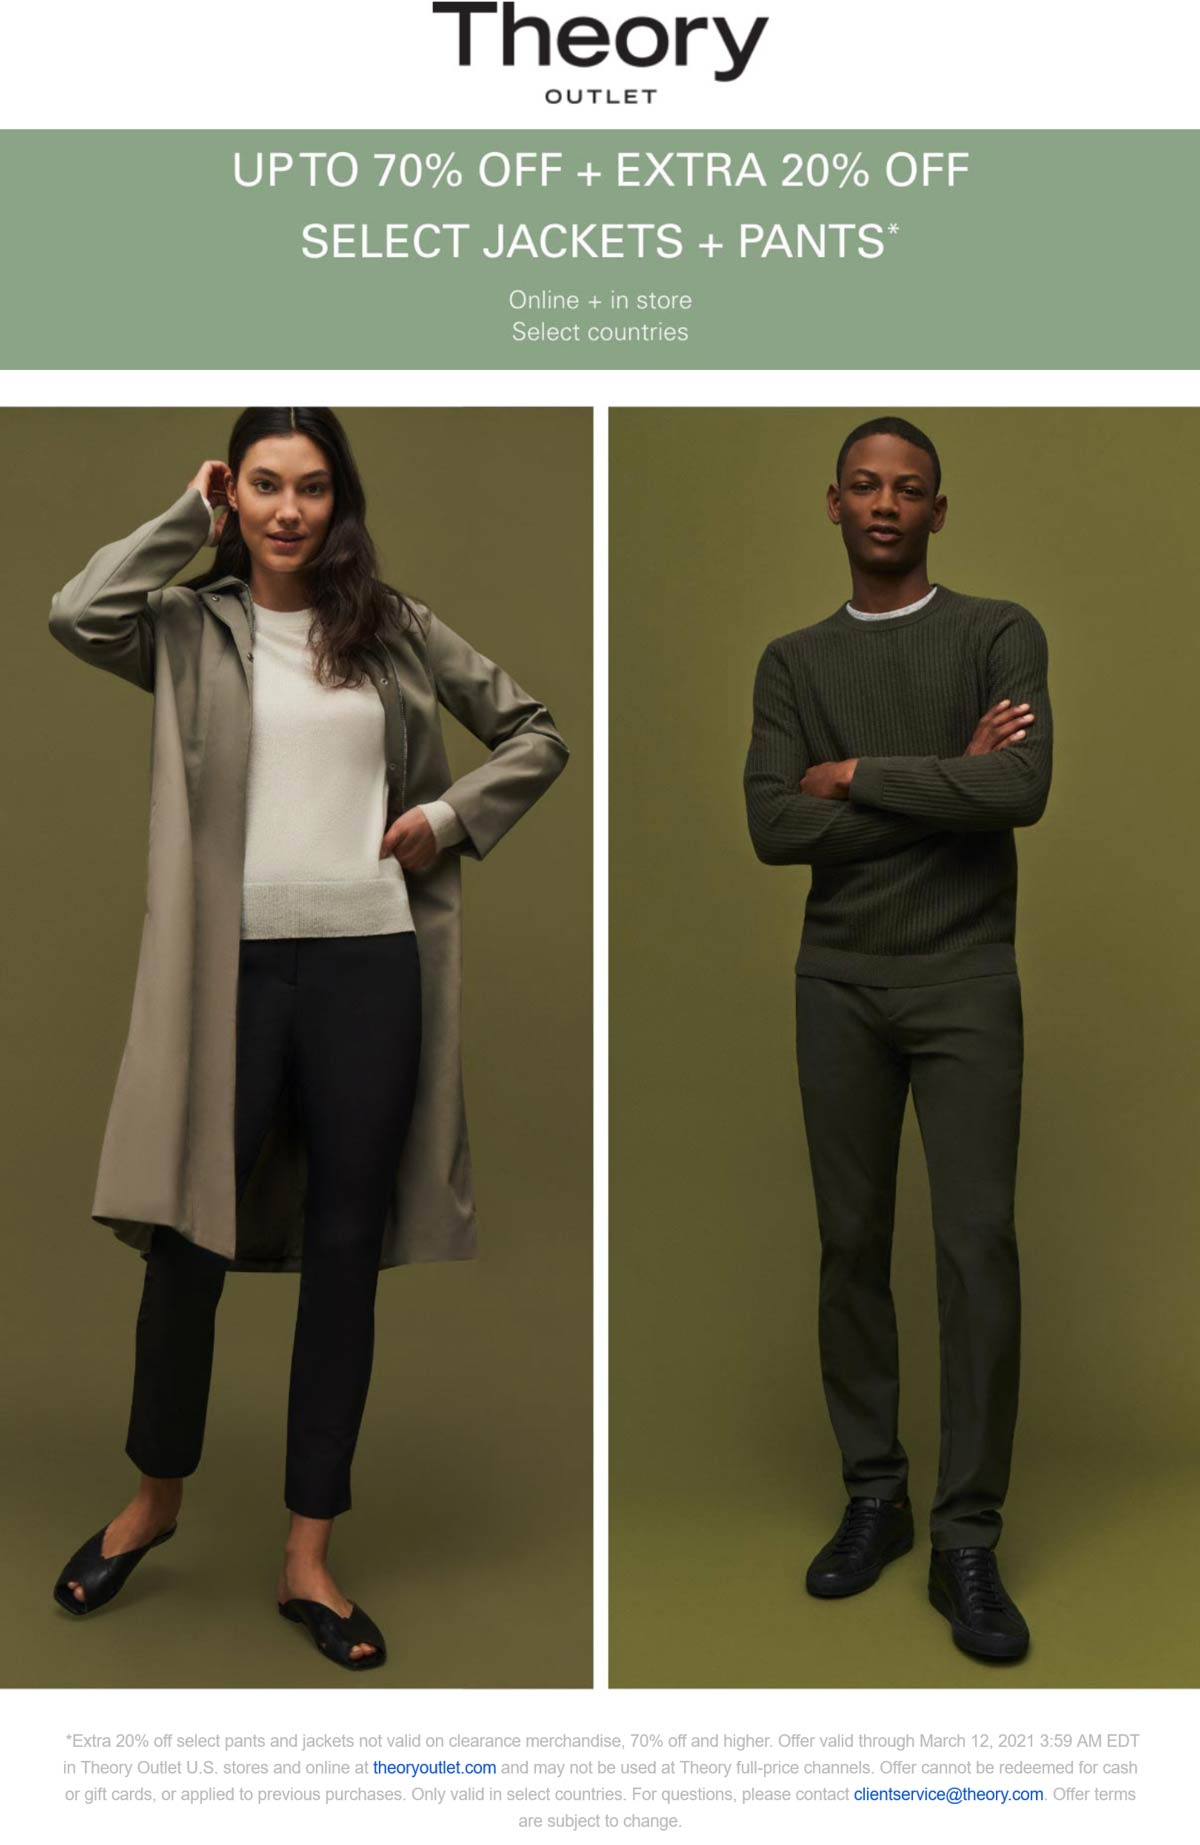 Theory Outlet stores Coupon  Extra 20% off pants and jackets & more at Theory Outlet, ditto online #theoryoutlet